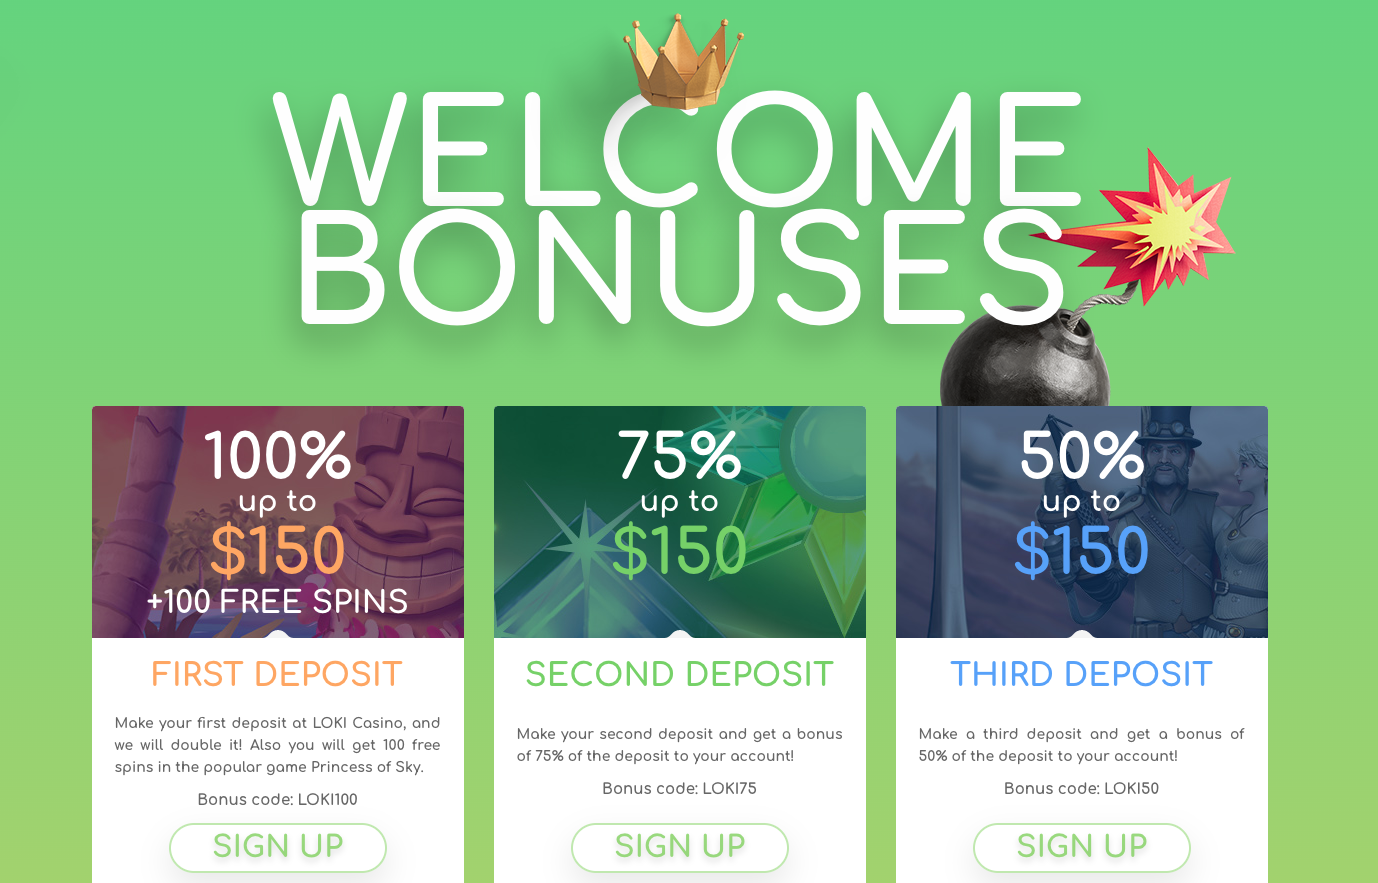 Loki Casino Welcome Bonuses